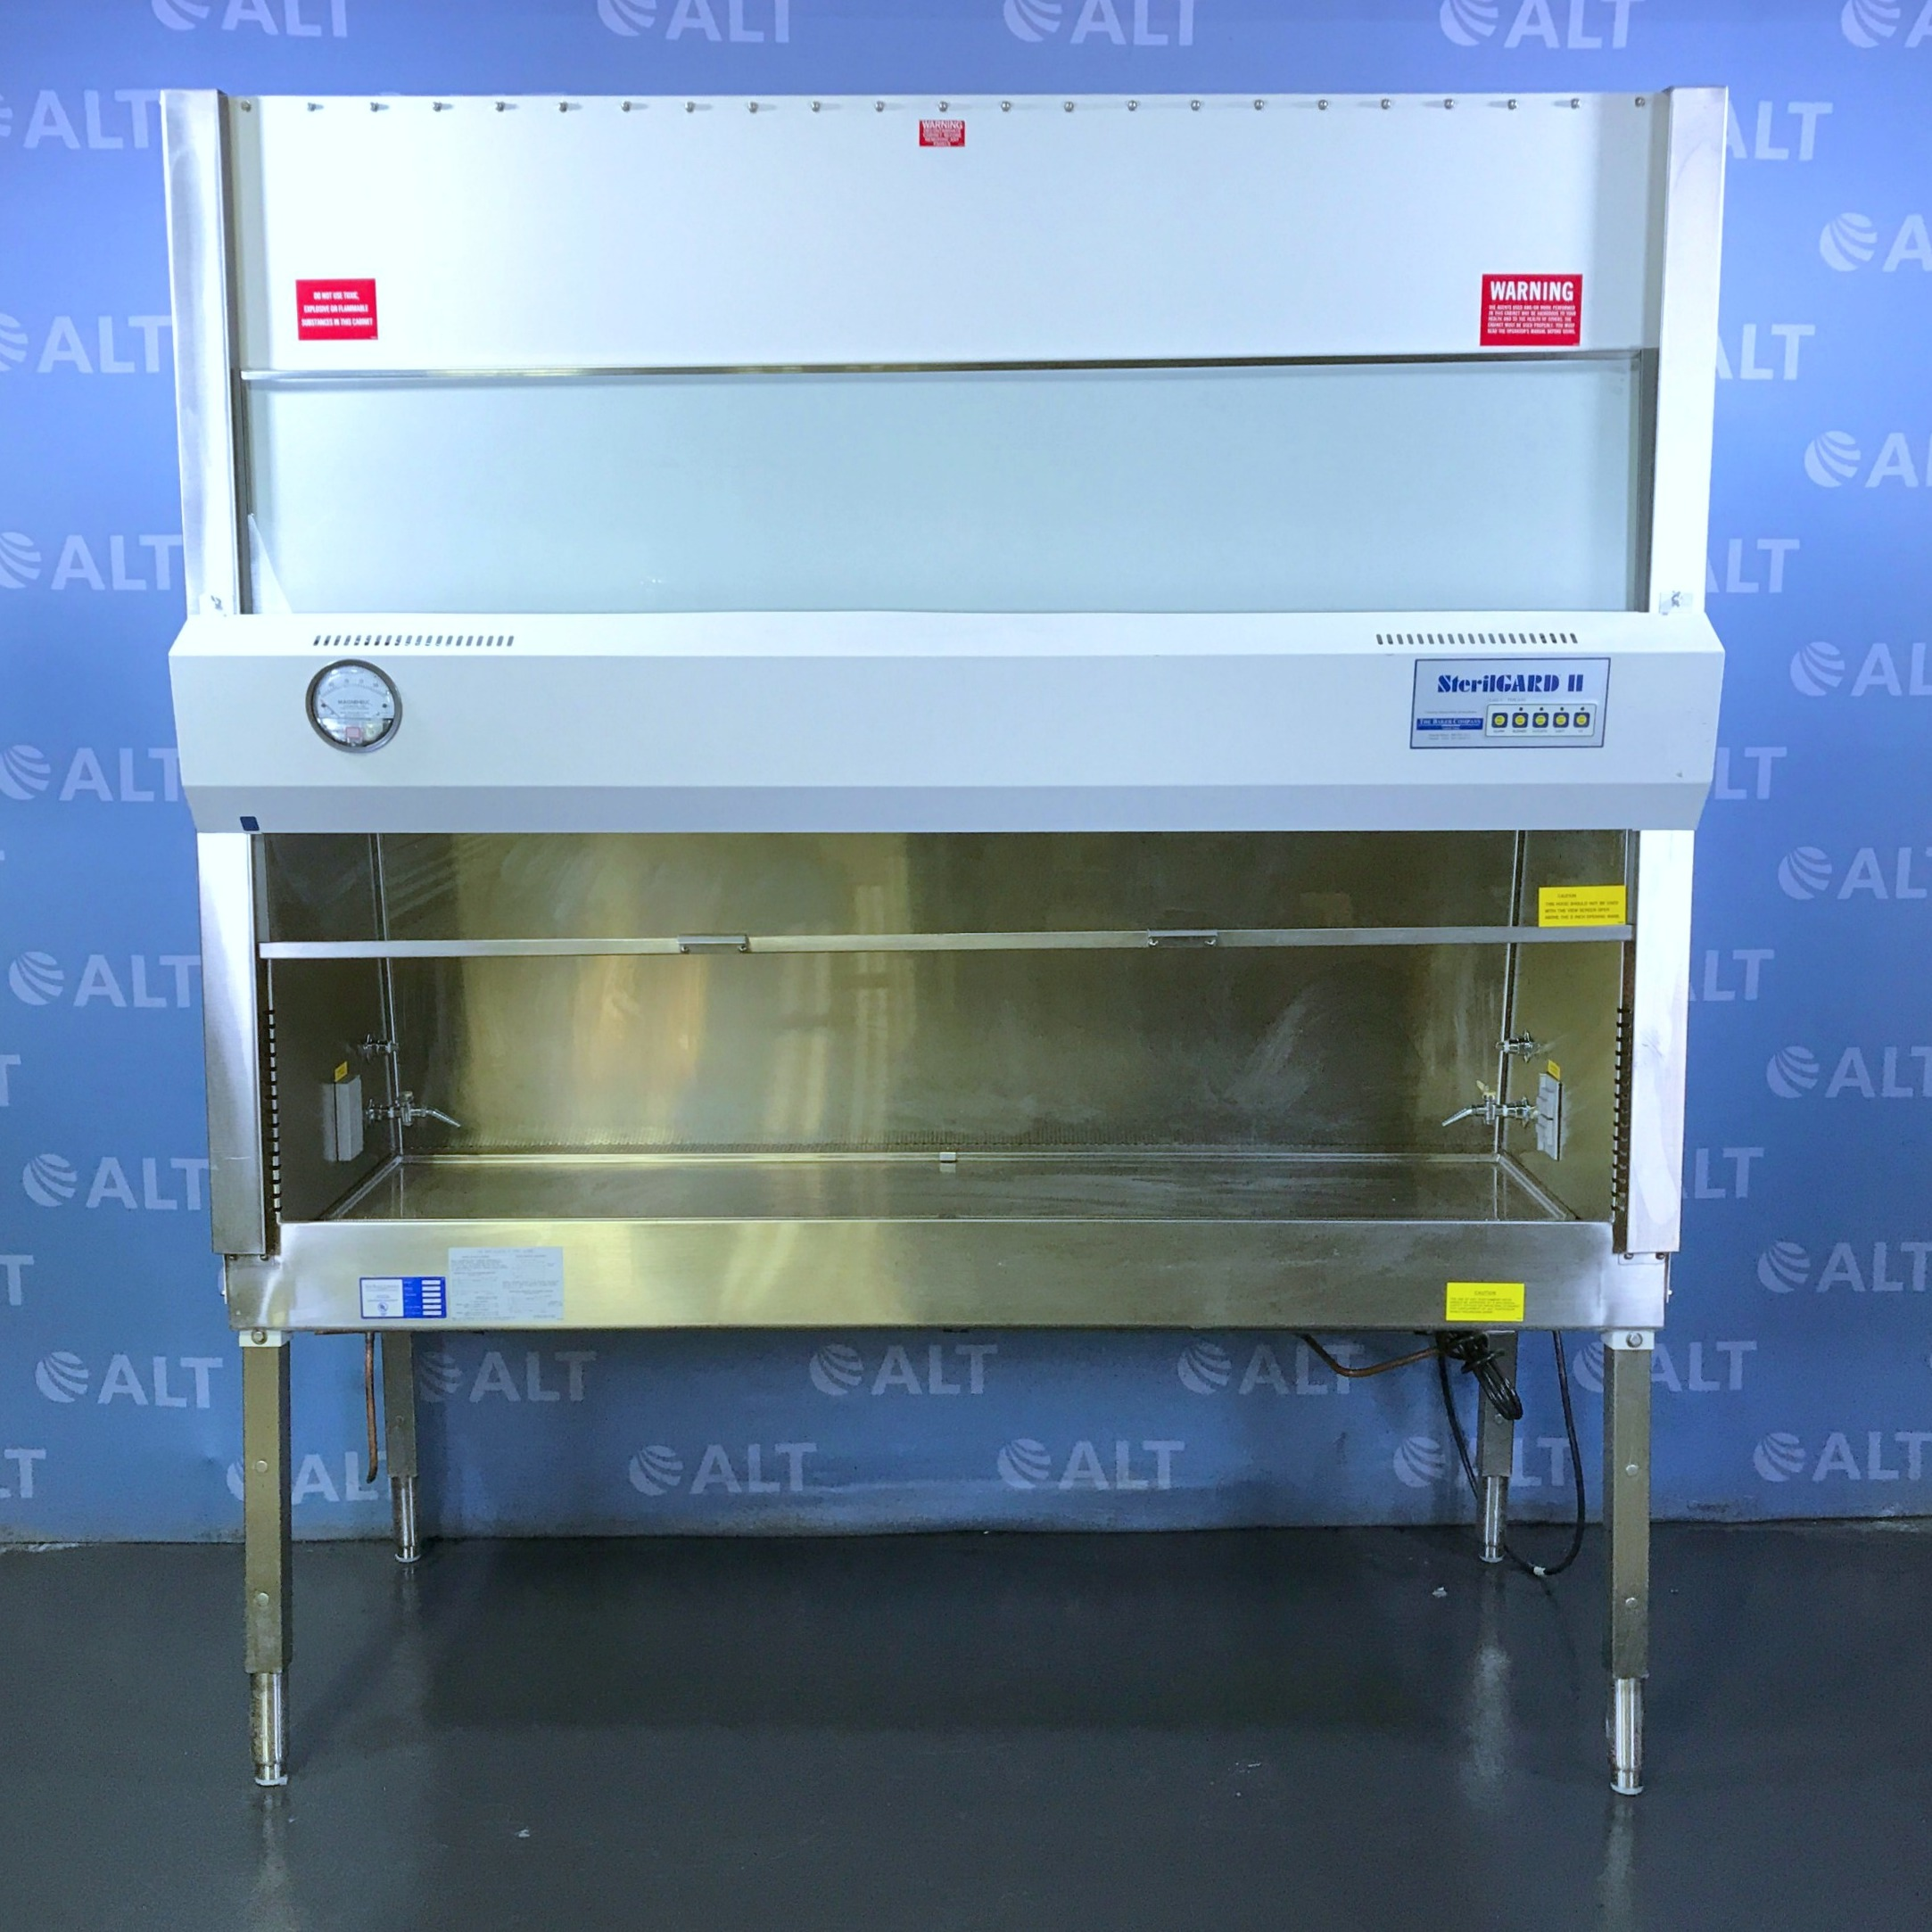 SG-600 6' Class II Type A/B3 SterilGUARD Biological Safety Cabinet  Name